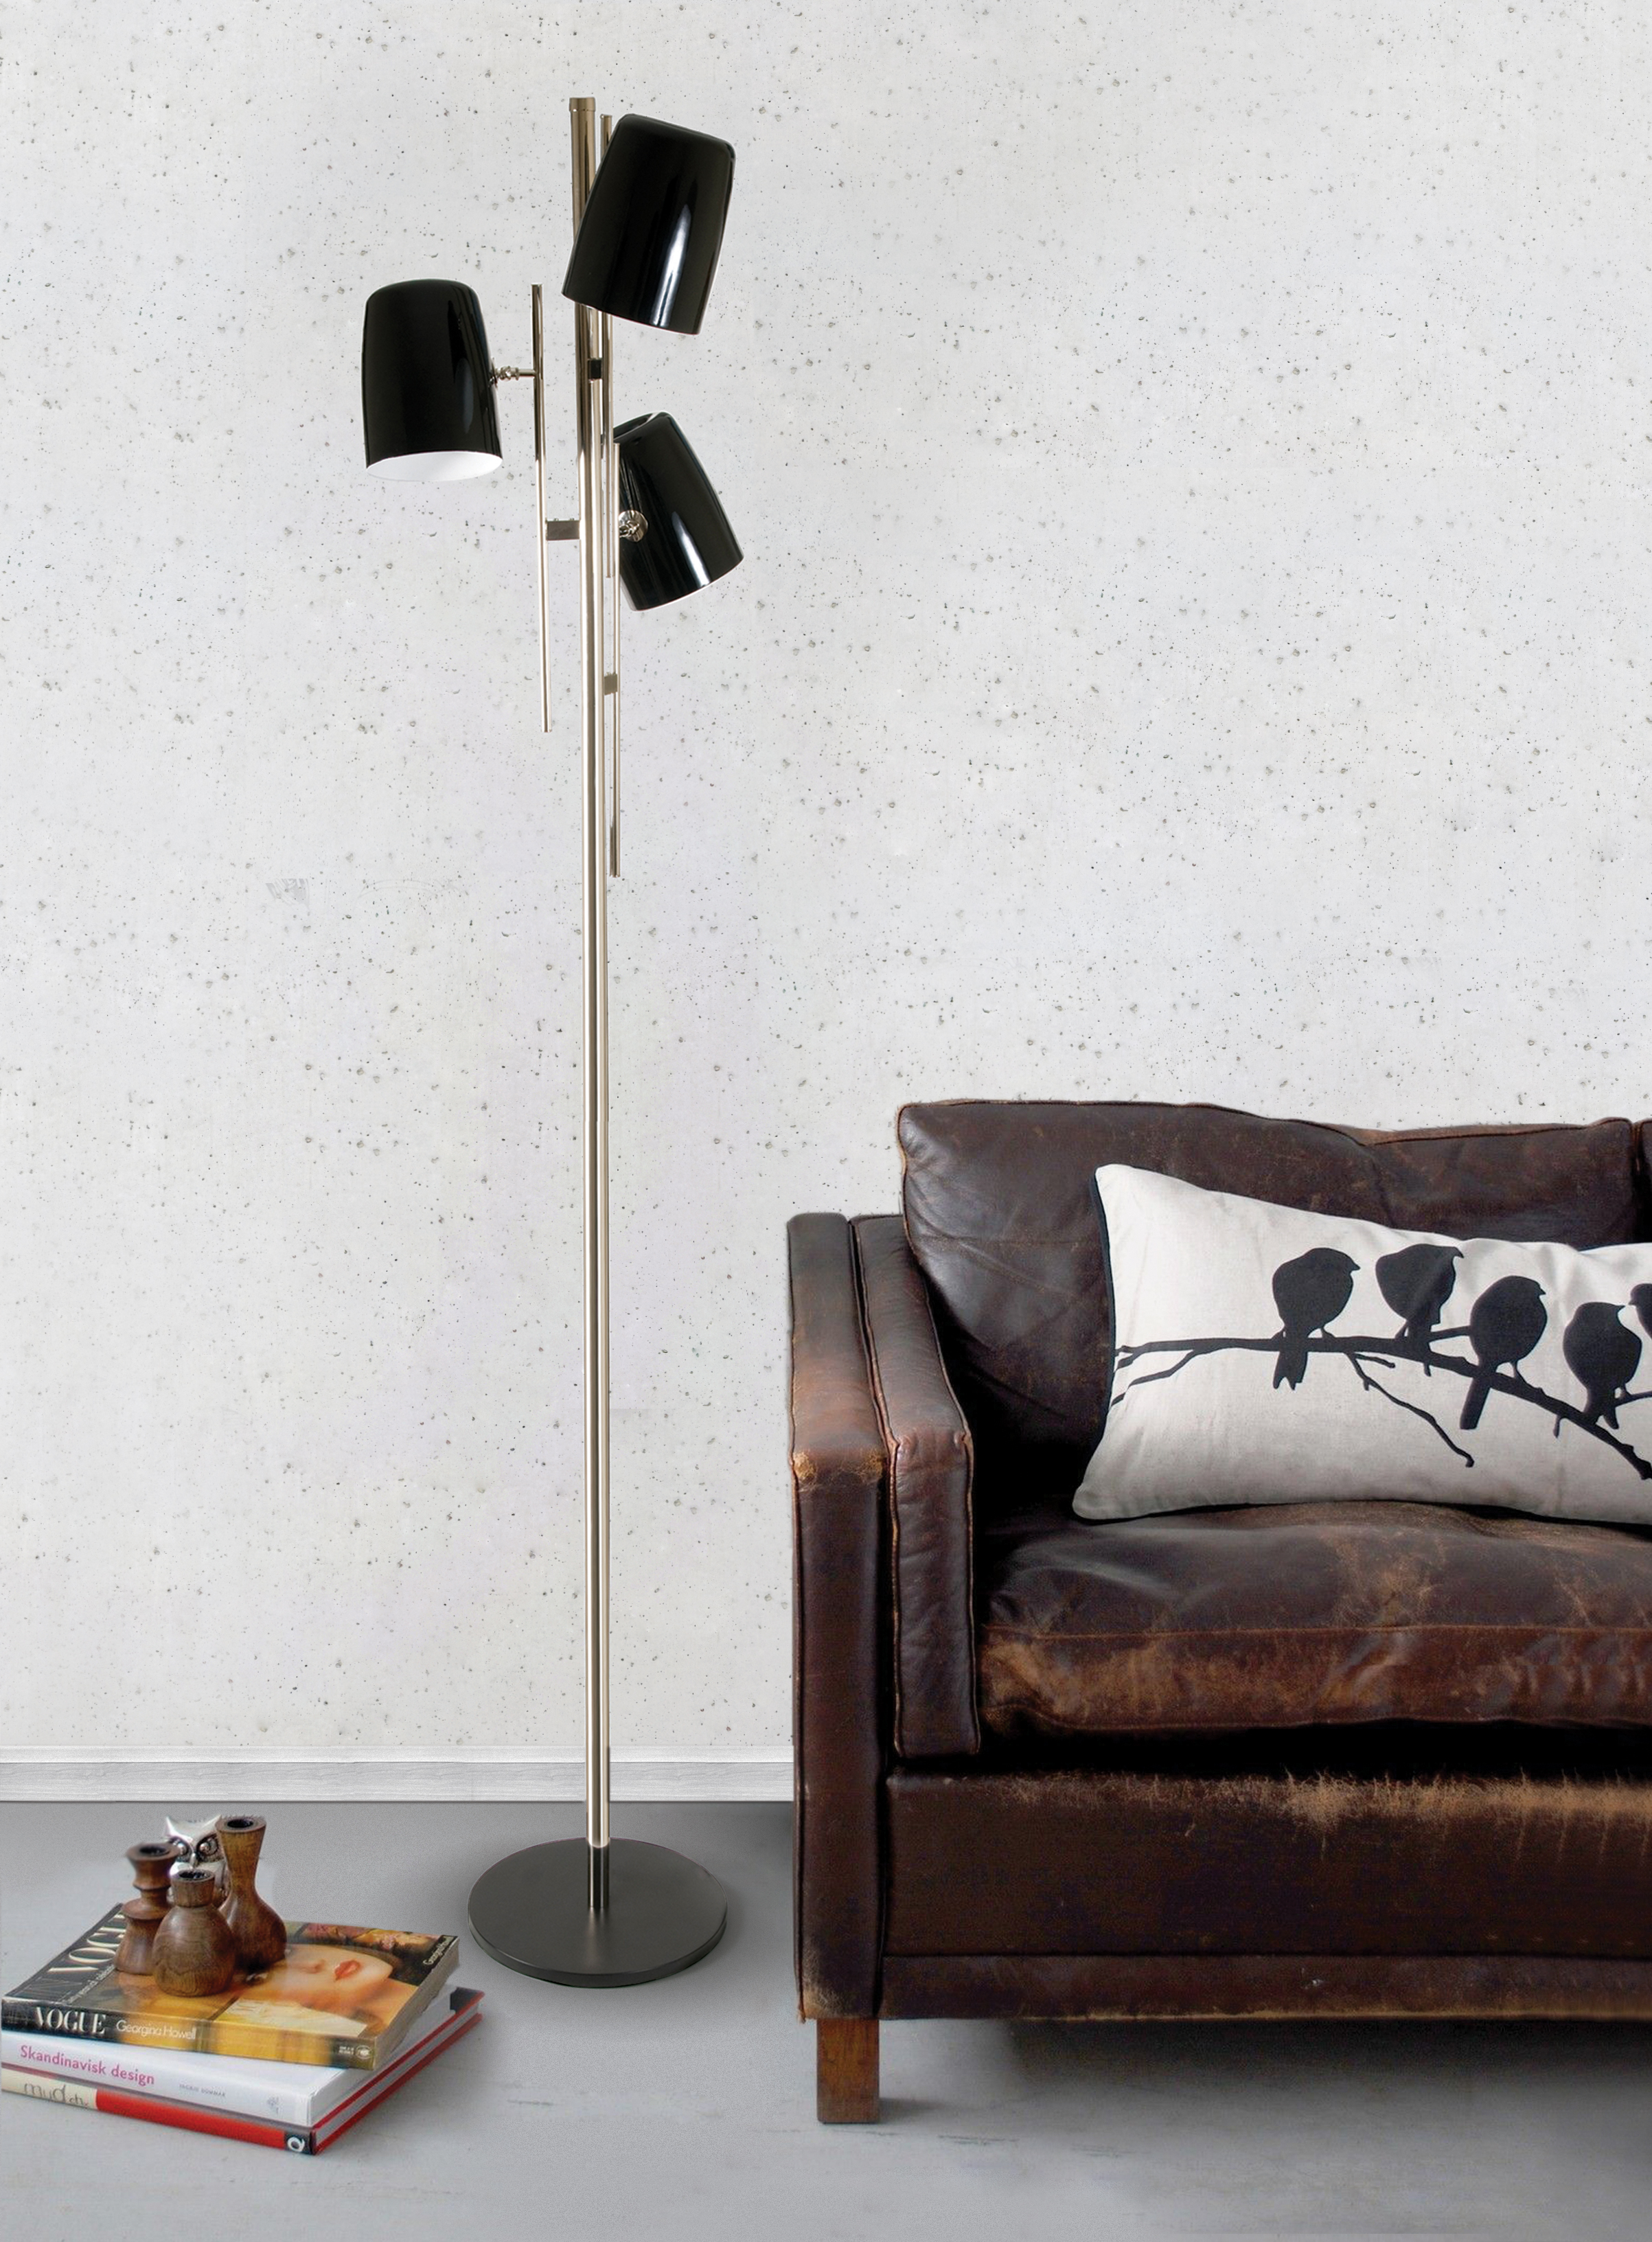 Black Floor Lamps That Will Shine in Your Mid-Century Modern Home  Black Floor Lamps That Will Shine in Your Mid-Century Modern Home Black Floor Lamps That Will Shine in Your Mid Century Modern Home 1